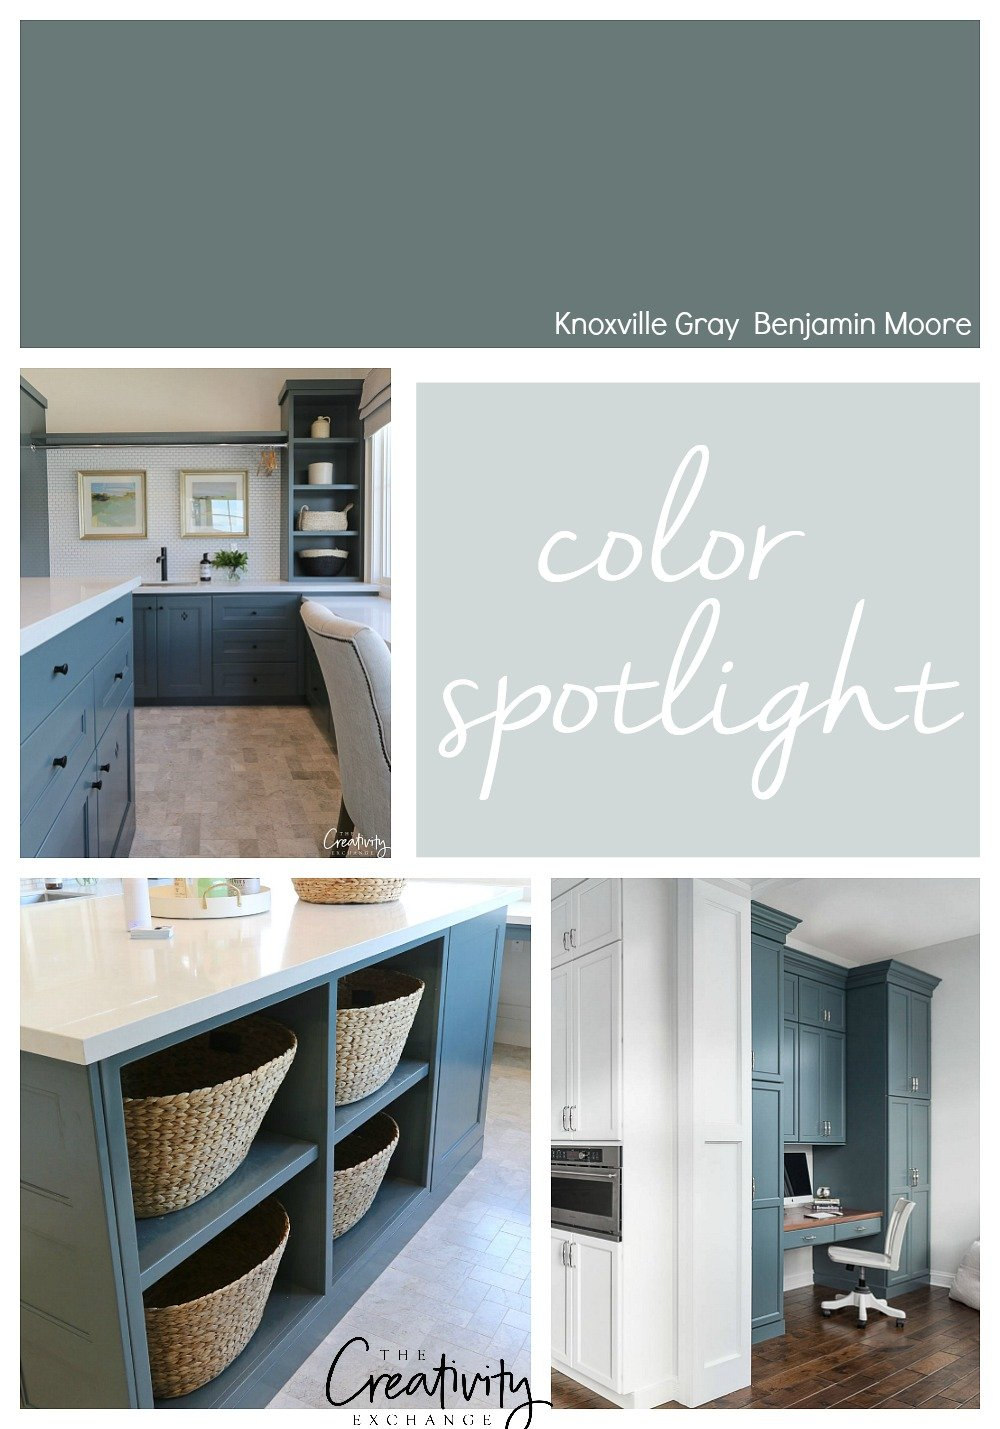 Tremendous Benjamin Moore Knoxville Gray Color Spotlight Interior Design Ideas Inamawefileorg